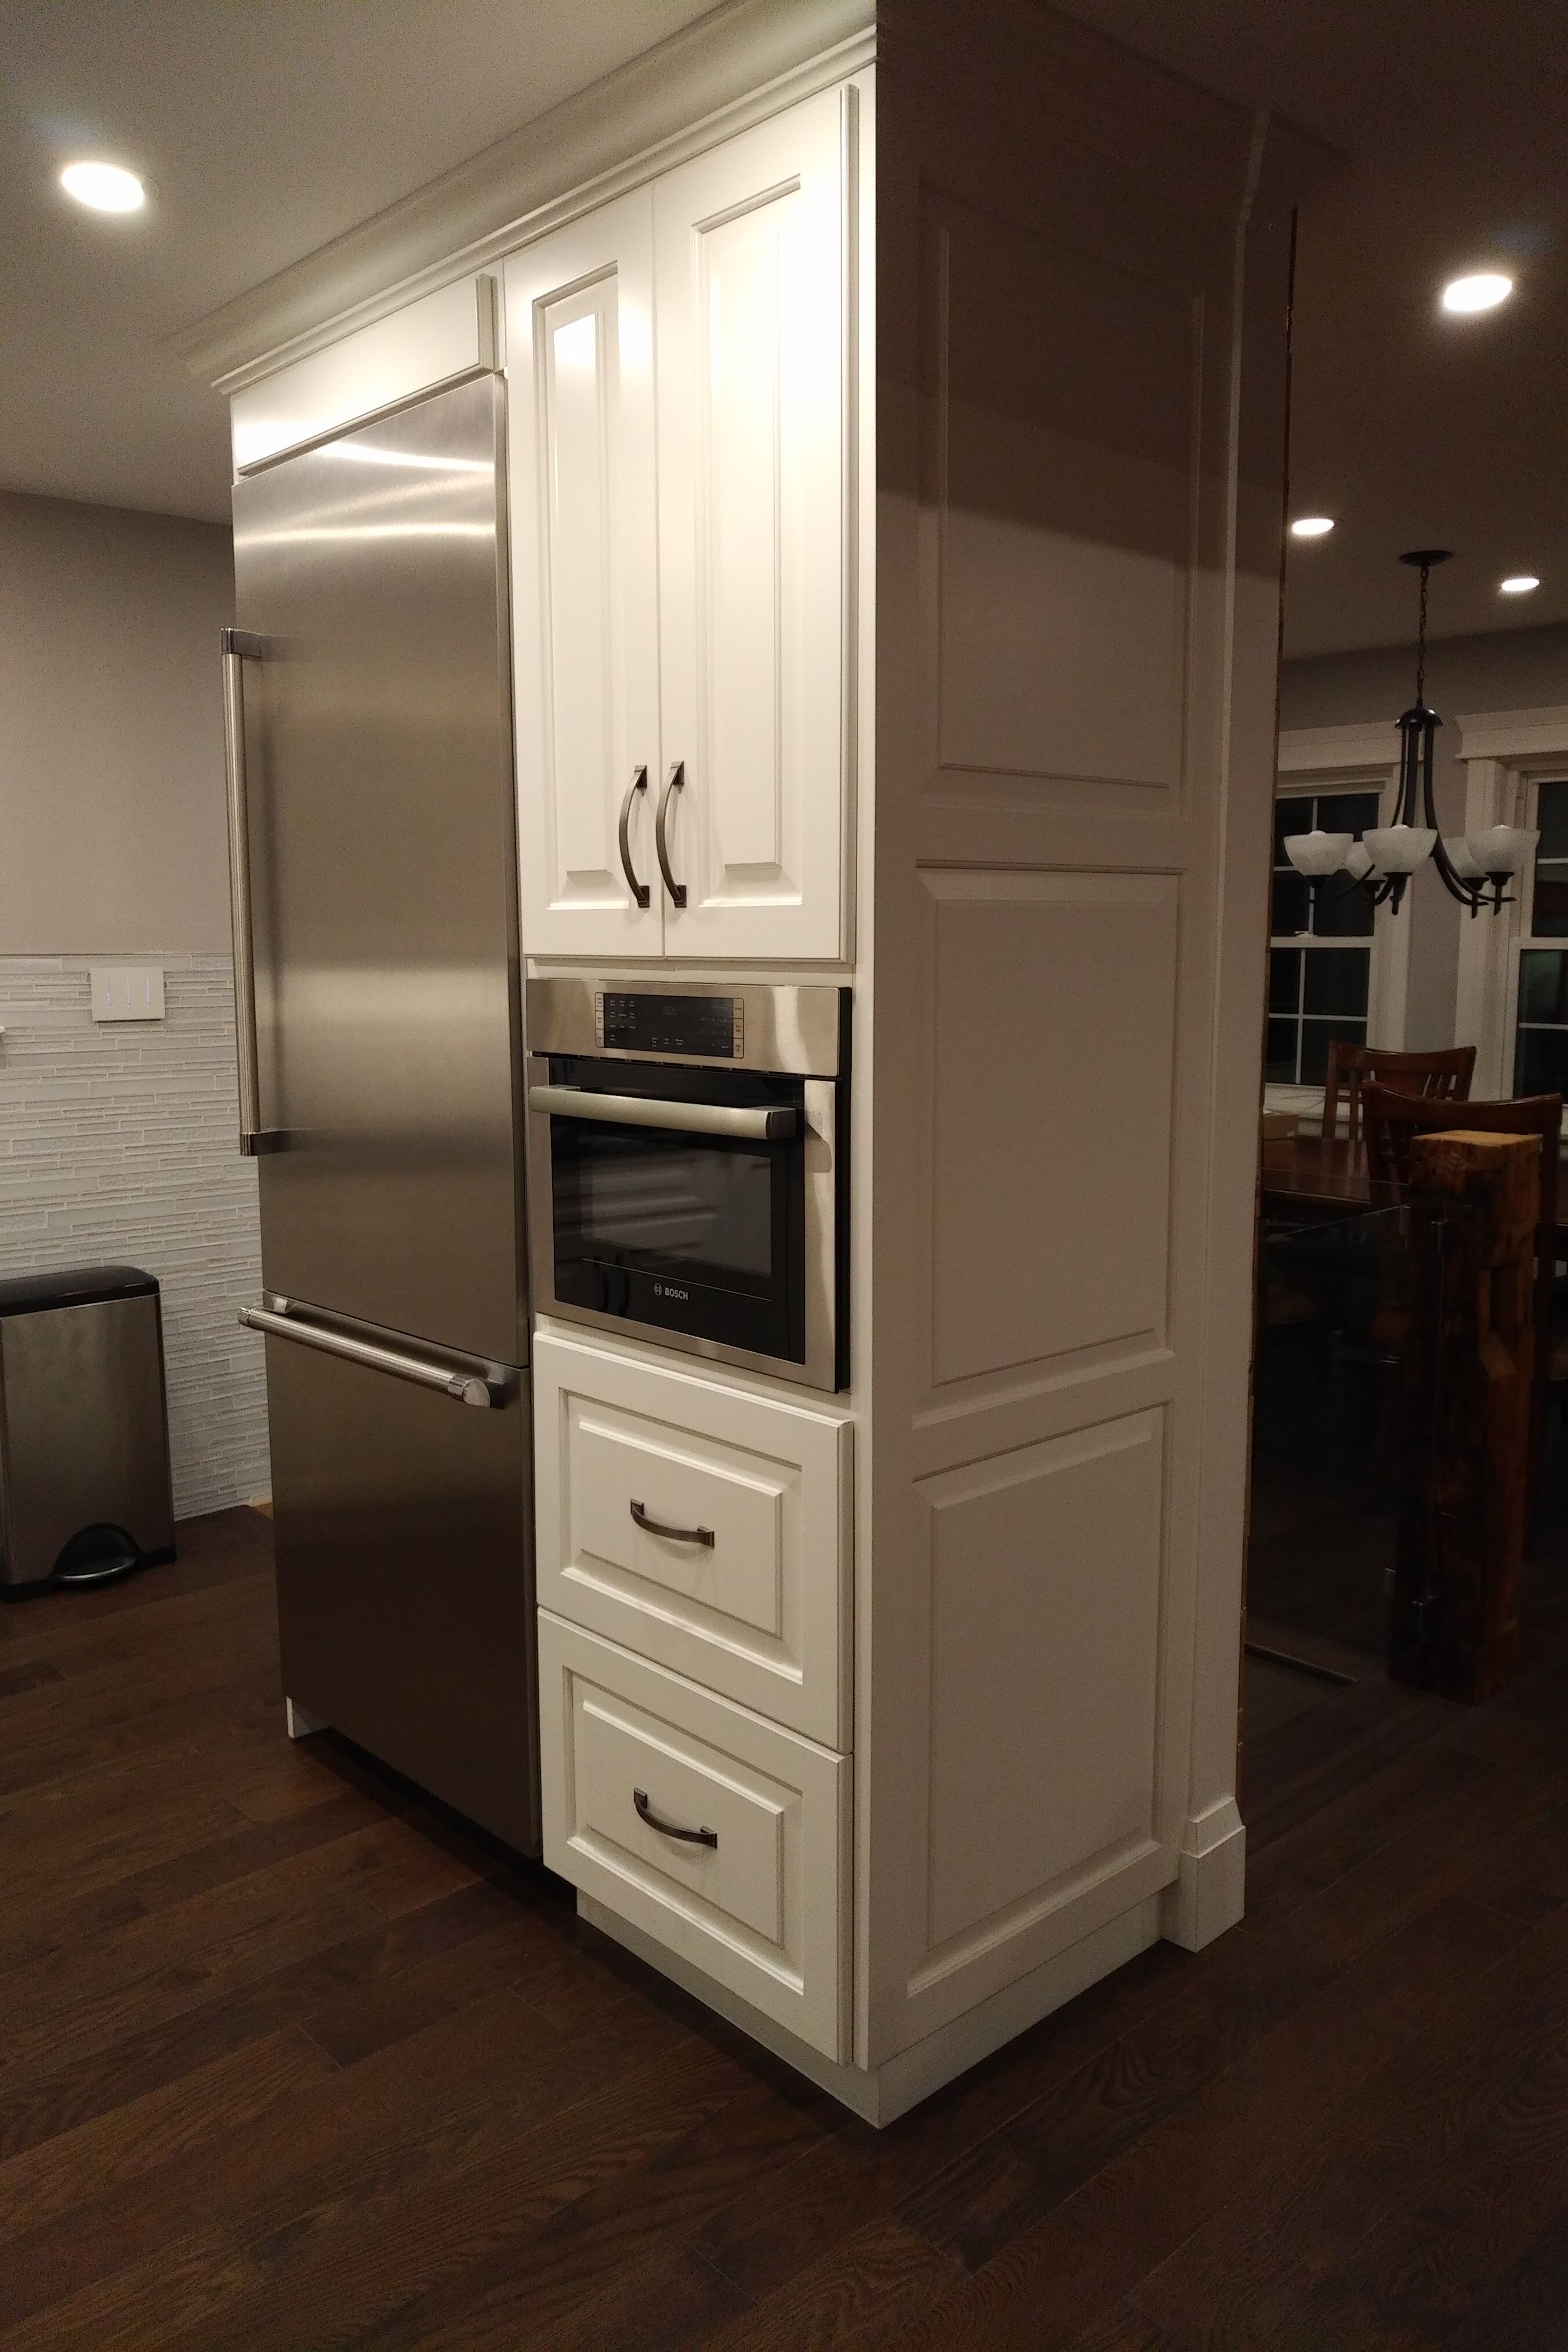 Wrap Around Wall Cabinet Design The Wall Was Left To Incorporate The Fridge And A Speed Oven This Freed Up Cabinet Design Kitchen Renovation White Backsplash